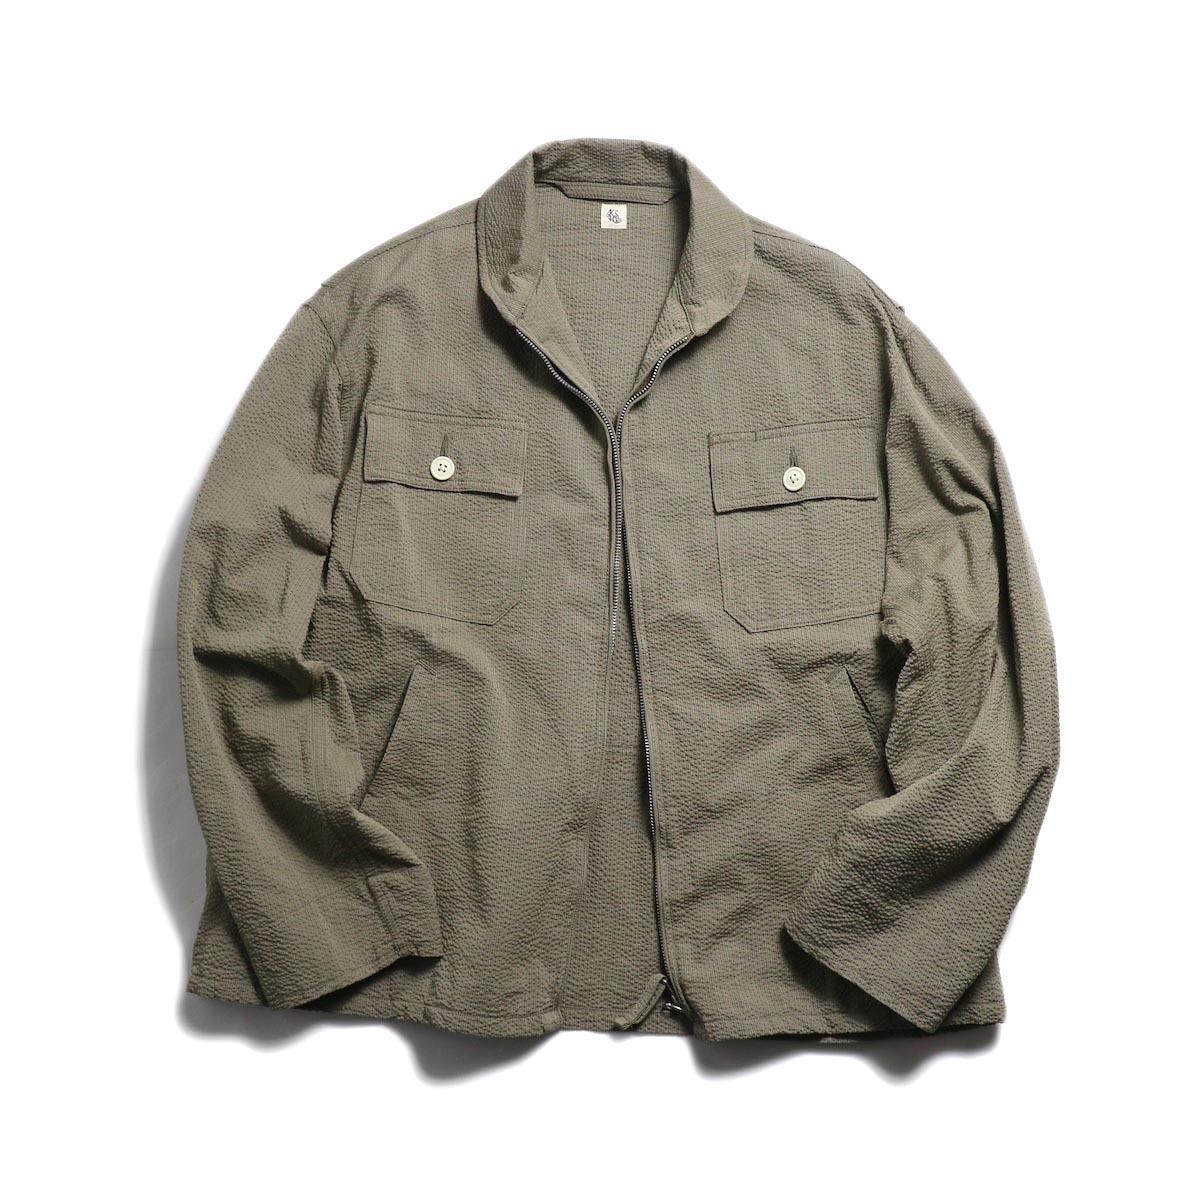 Kaptain Sunshine / Summer Flight Jacket -Beige/Gray